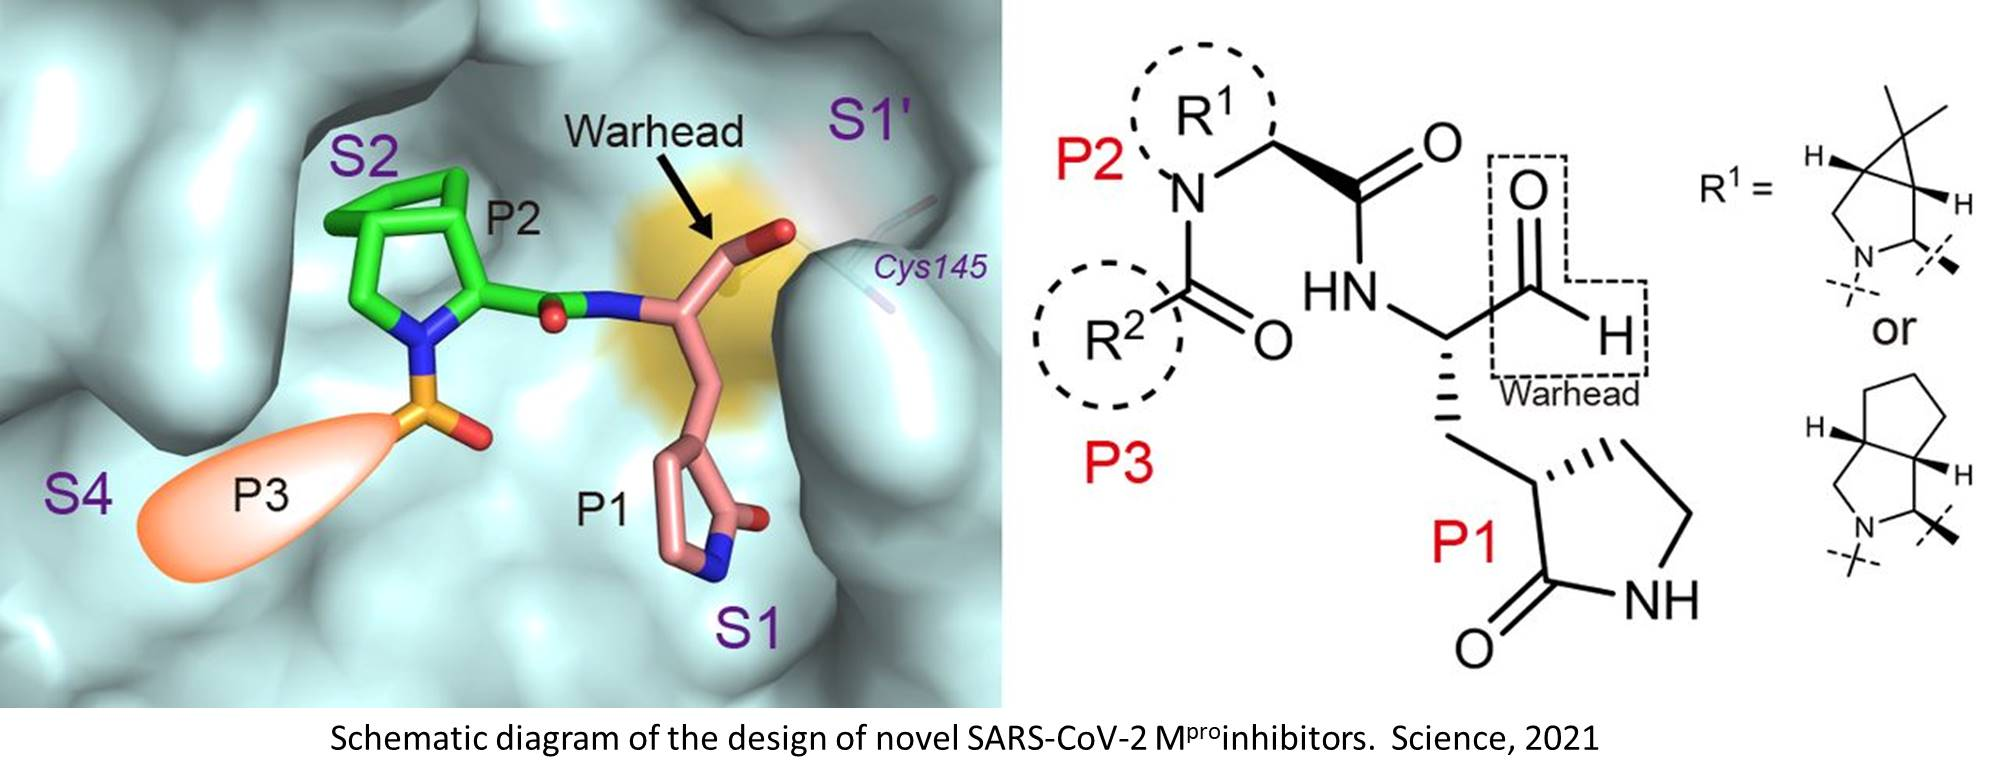 Targeting the SARS-CoV-2 main protease yields promise in transgenic mouse model